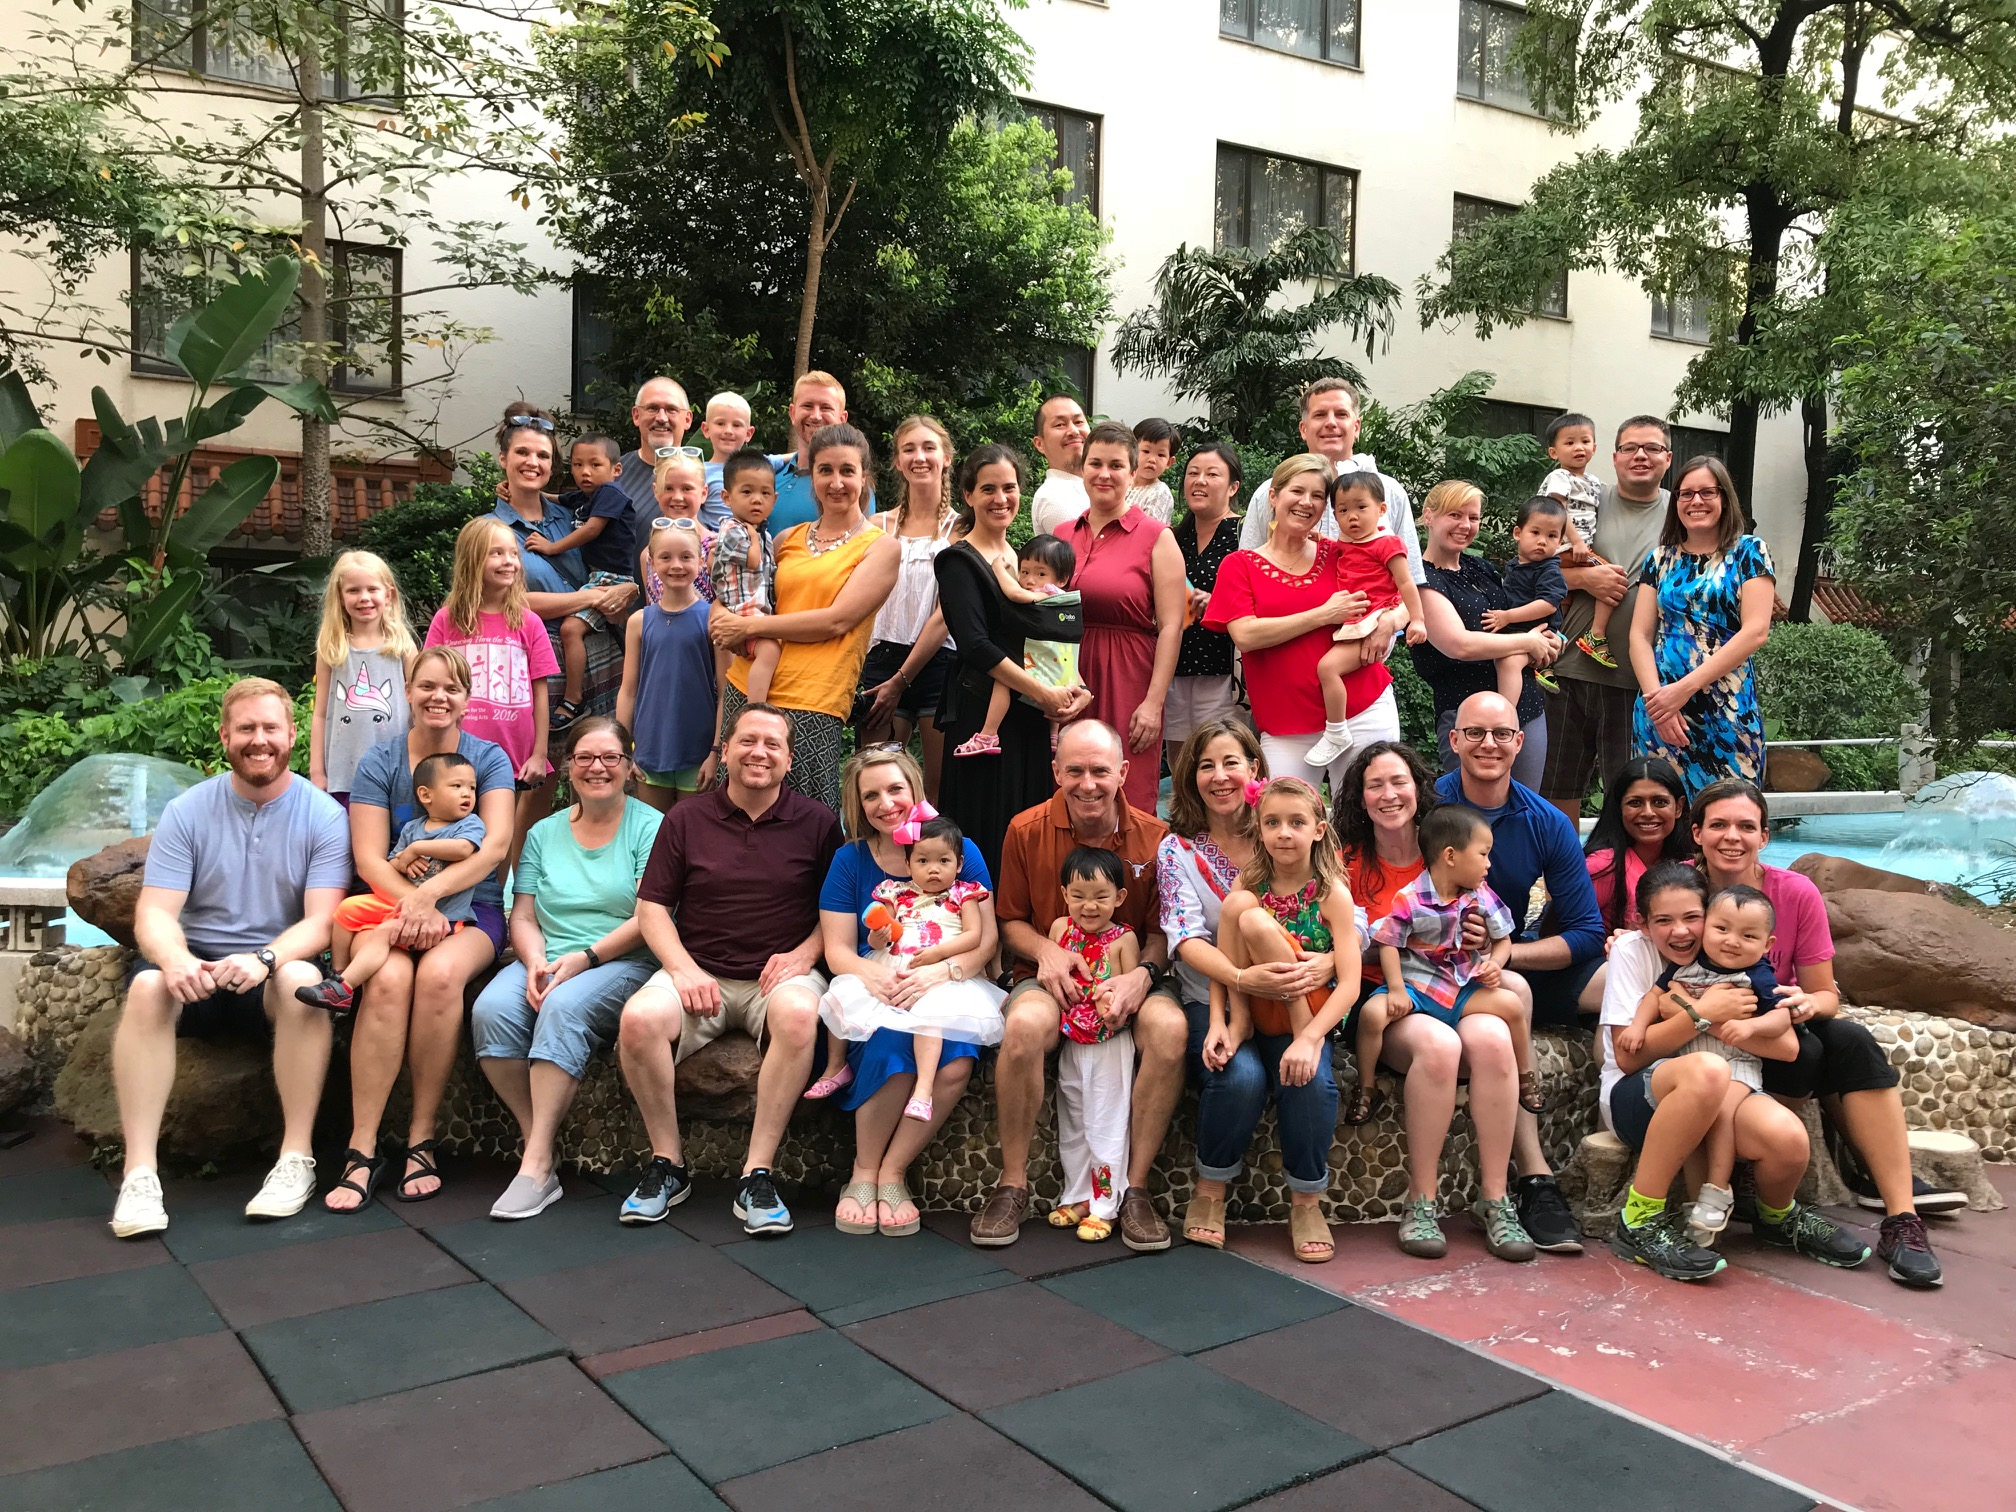 Our whole group of Holt families!  So thankful to travel with others who are experiencing the same as us.  Everyone is amazing about helping out each other.